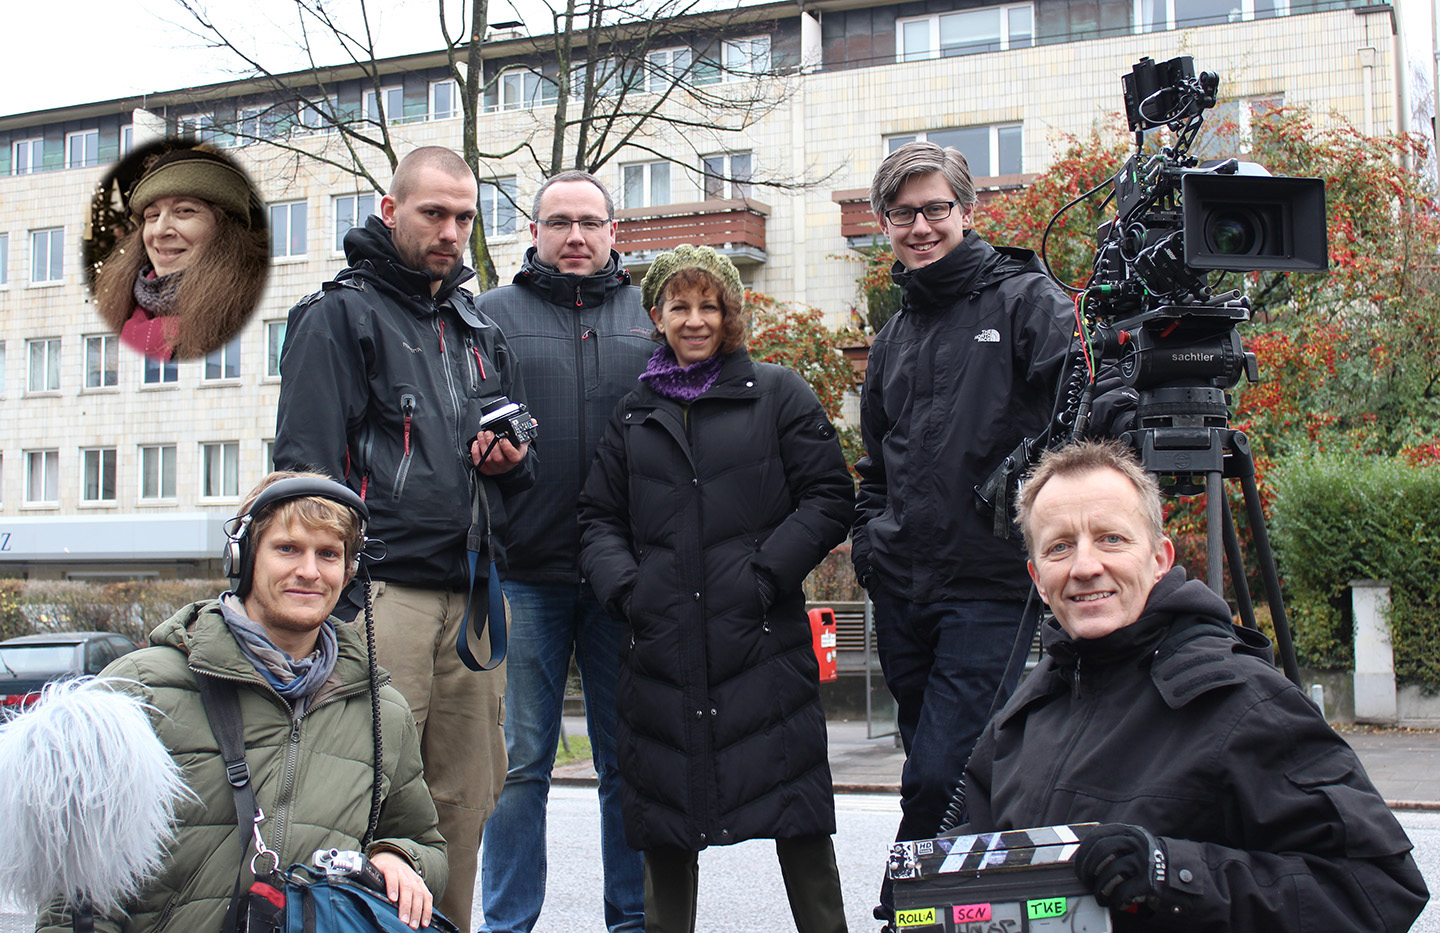 Hamburg Shooting Crew